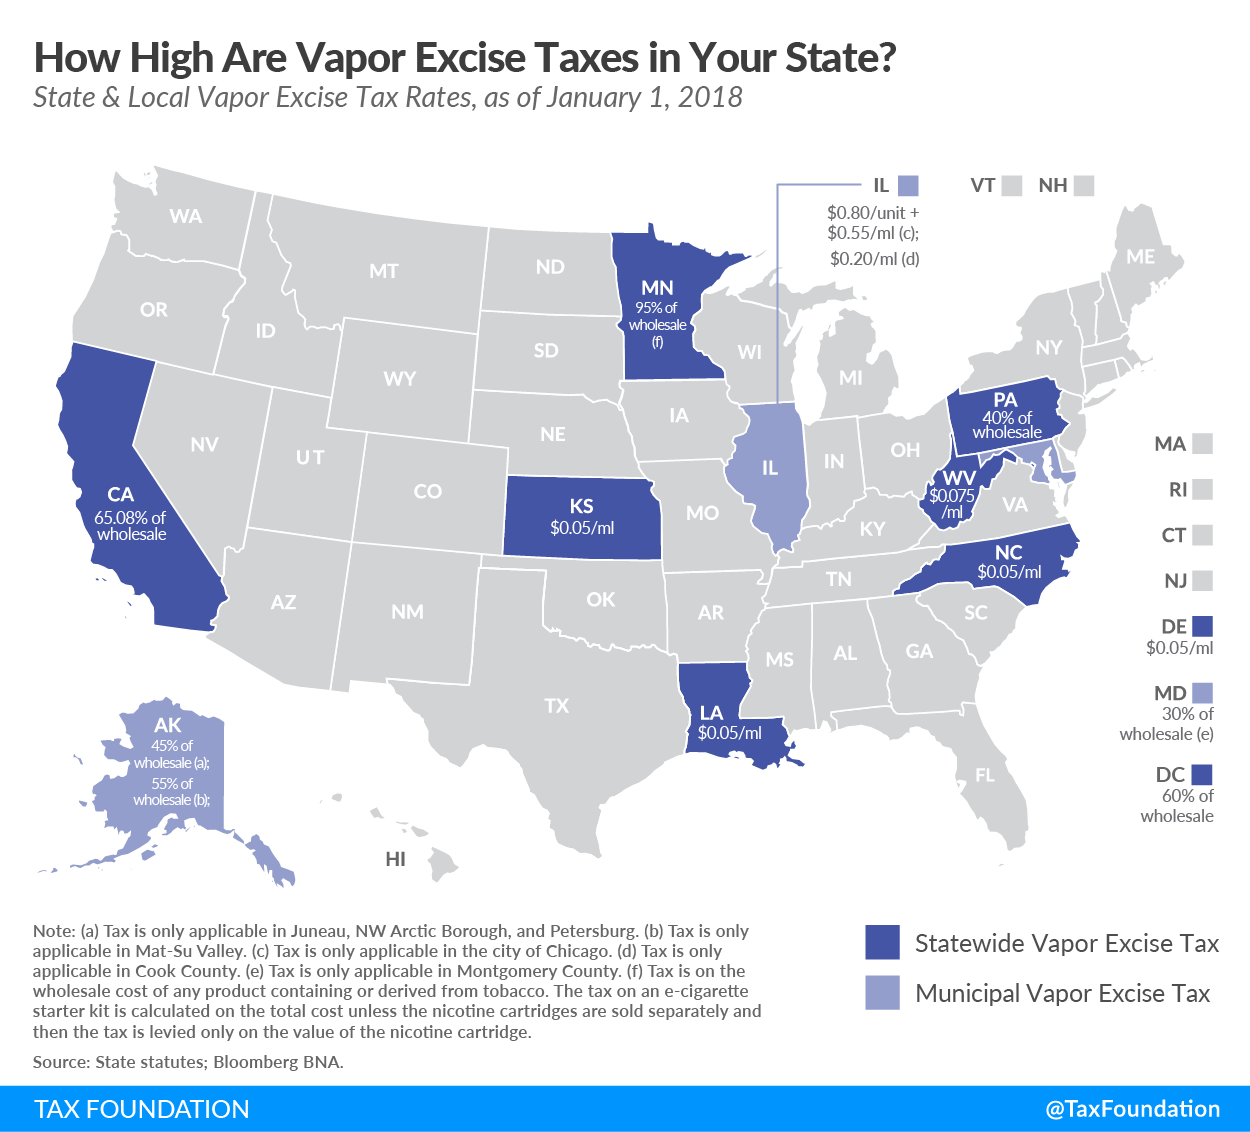 How High Are Vapor Taxes in Your State? | E-Cigarettes and Vaping Tax